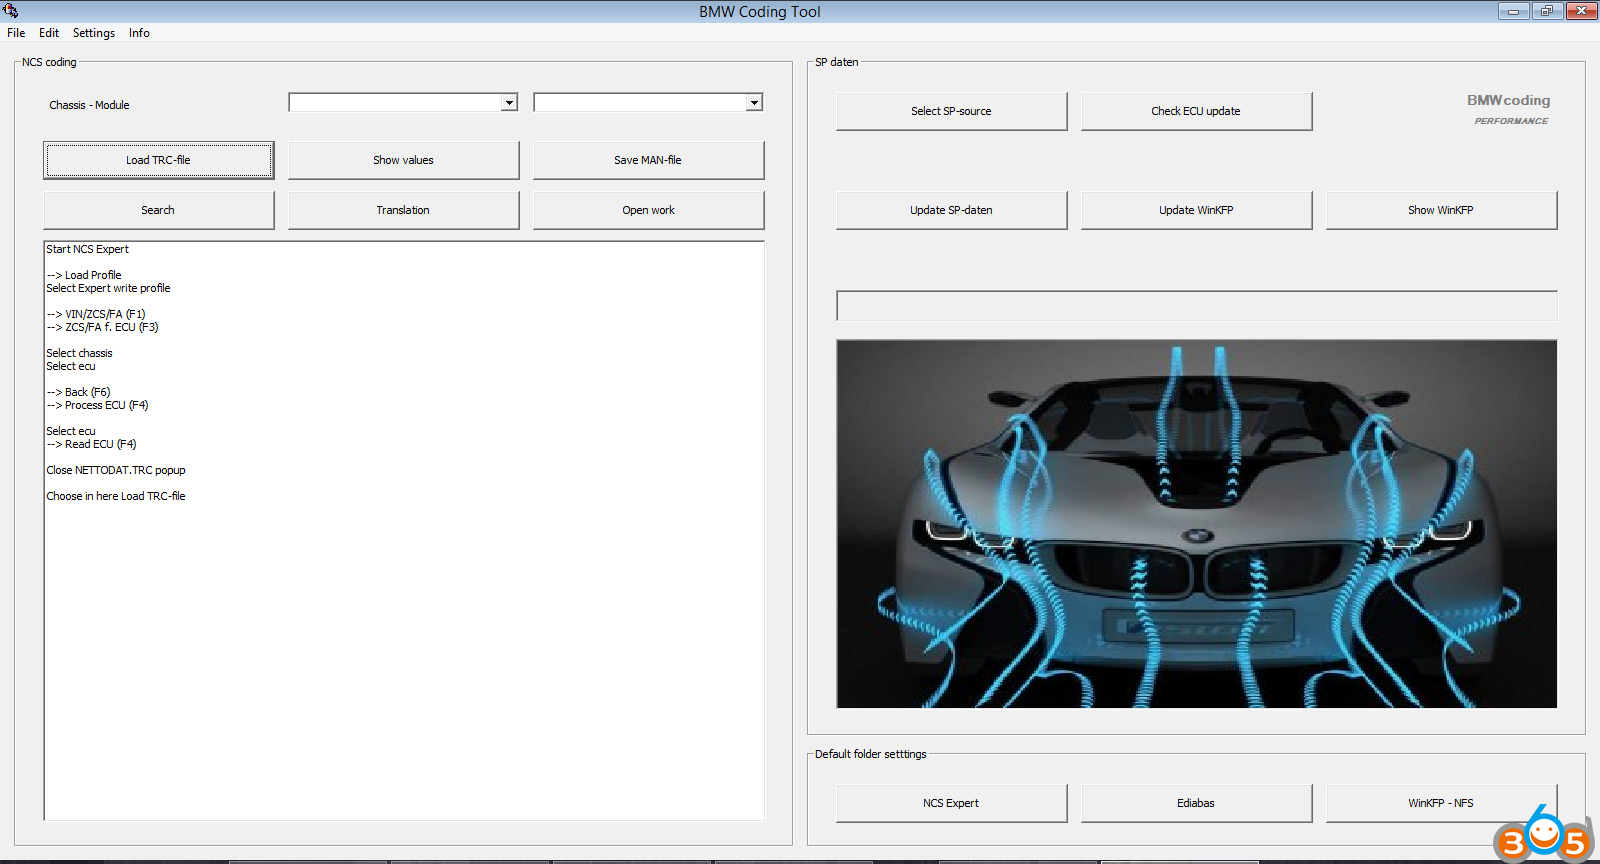 How to update SP-DATEN Files with BMW Coding Tool v2 50 | OBDII365